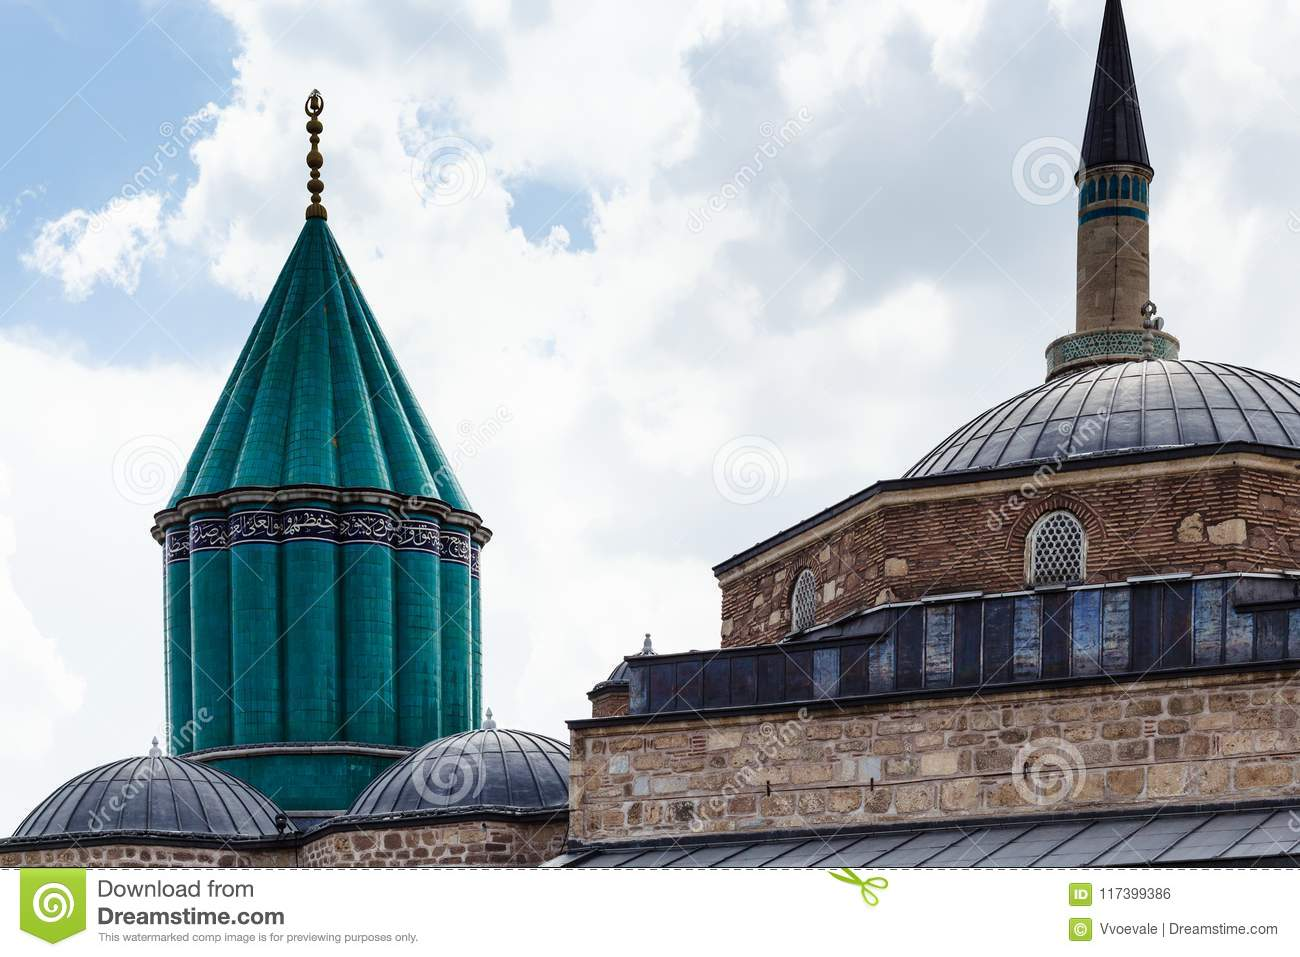 green dome and roof of Rumi Mausoleum in Konya